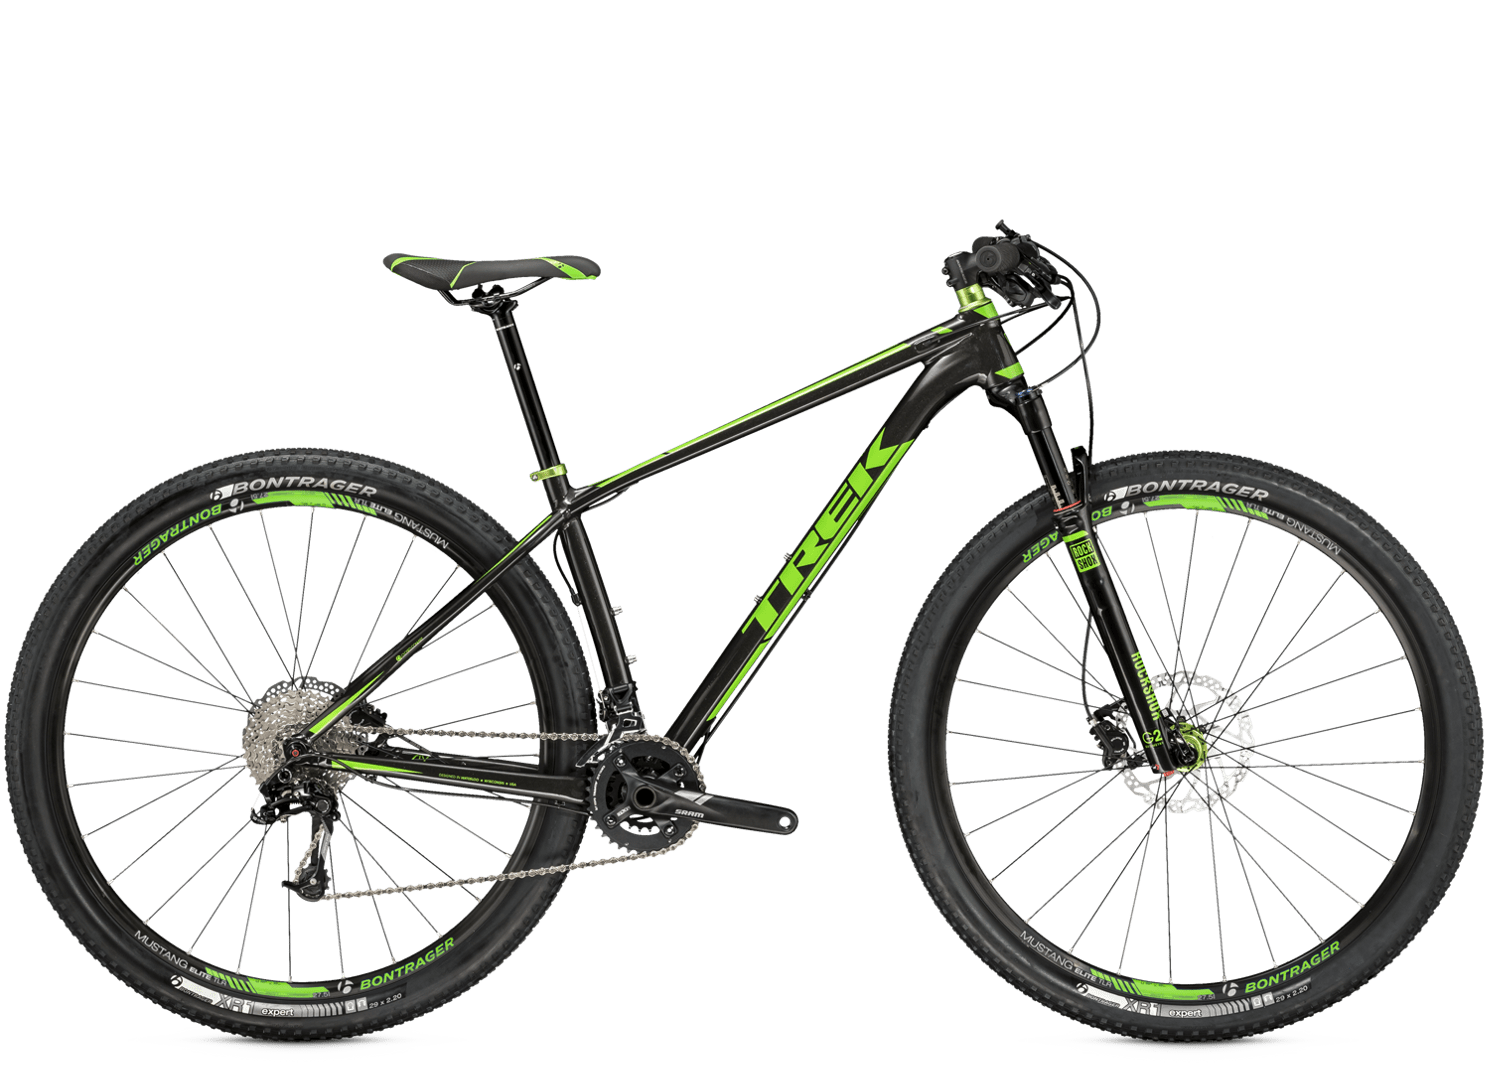 De Trek Superfly